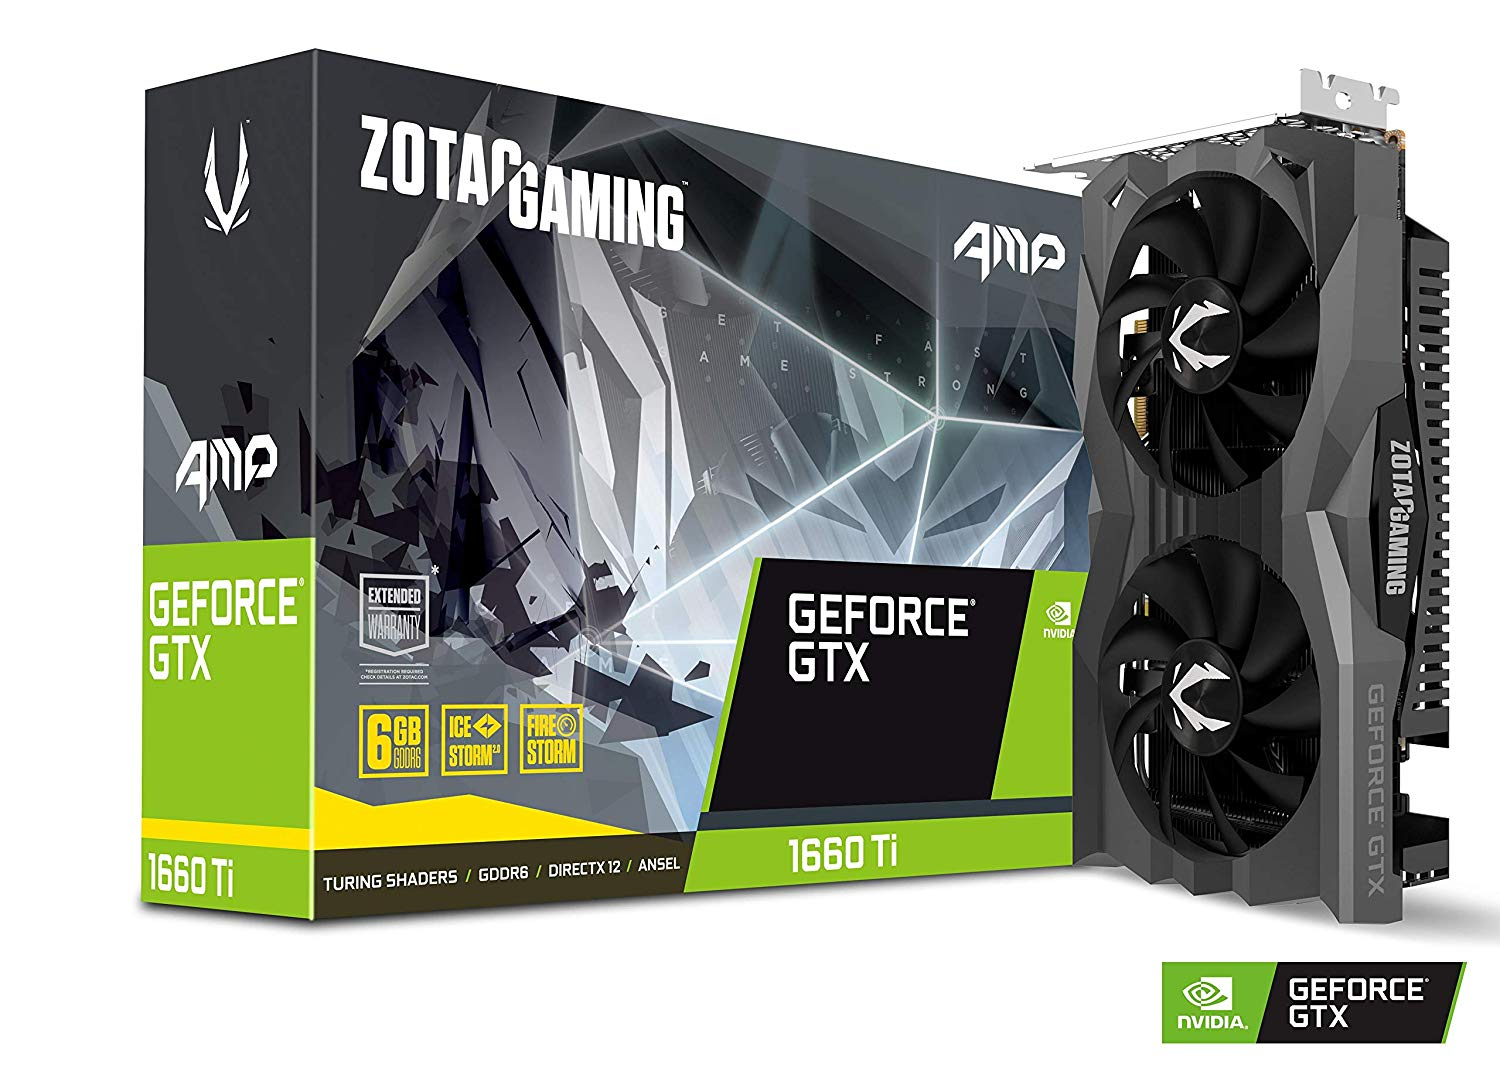 ZOTAC VGA GAMING GEFORCE GTX 1660 TI AMP 6GB GDDR6 HDMI/DP